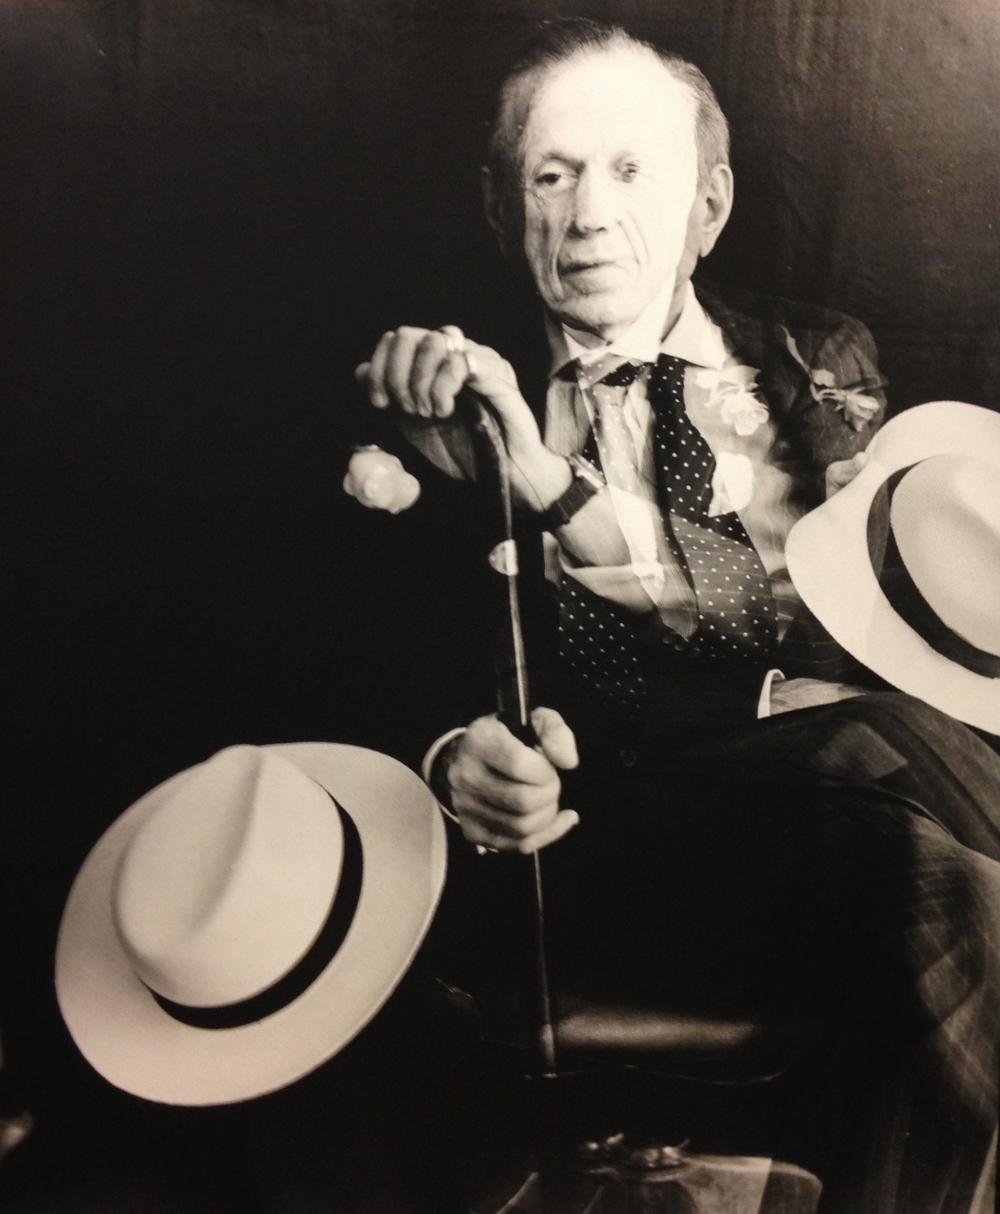 Portrait of Richard Harlan Blond (The World's Most Interesting Man) , 2012  Gelatin silver photograph.  23 3/4 x 19 inches